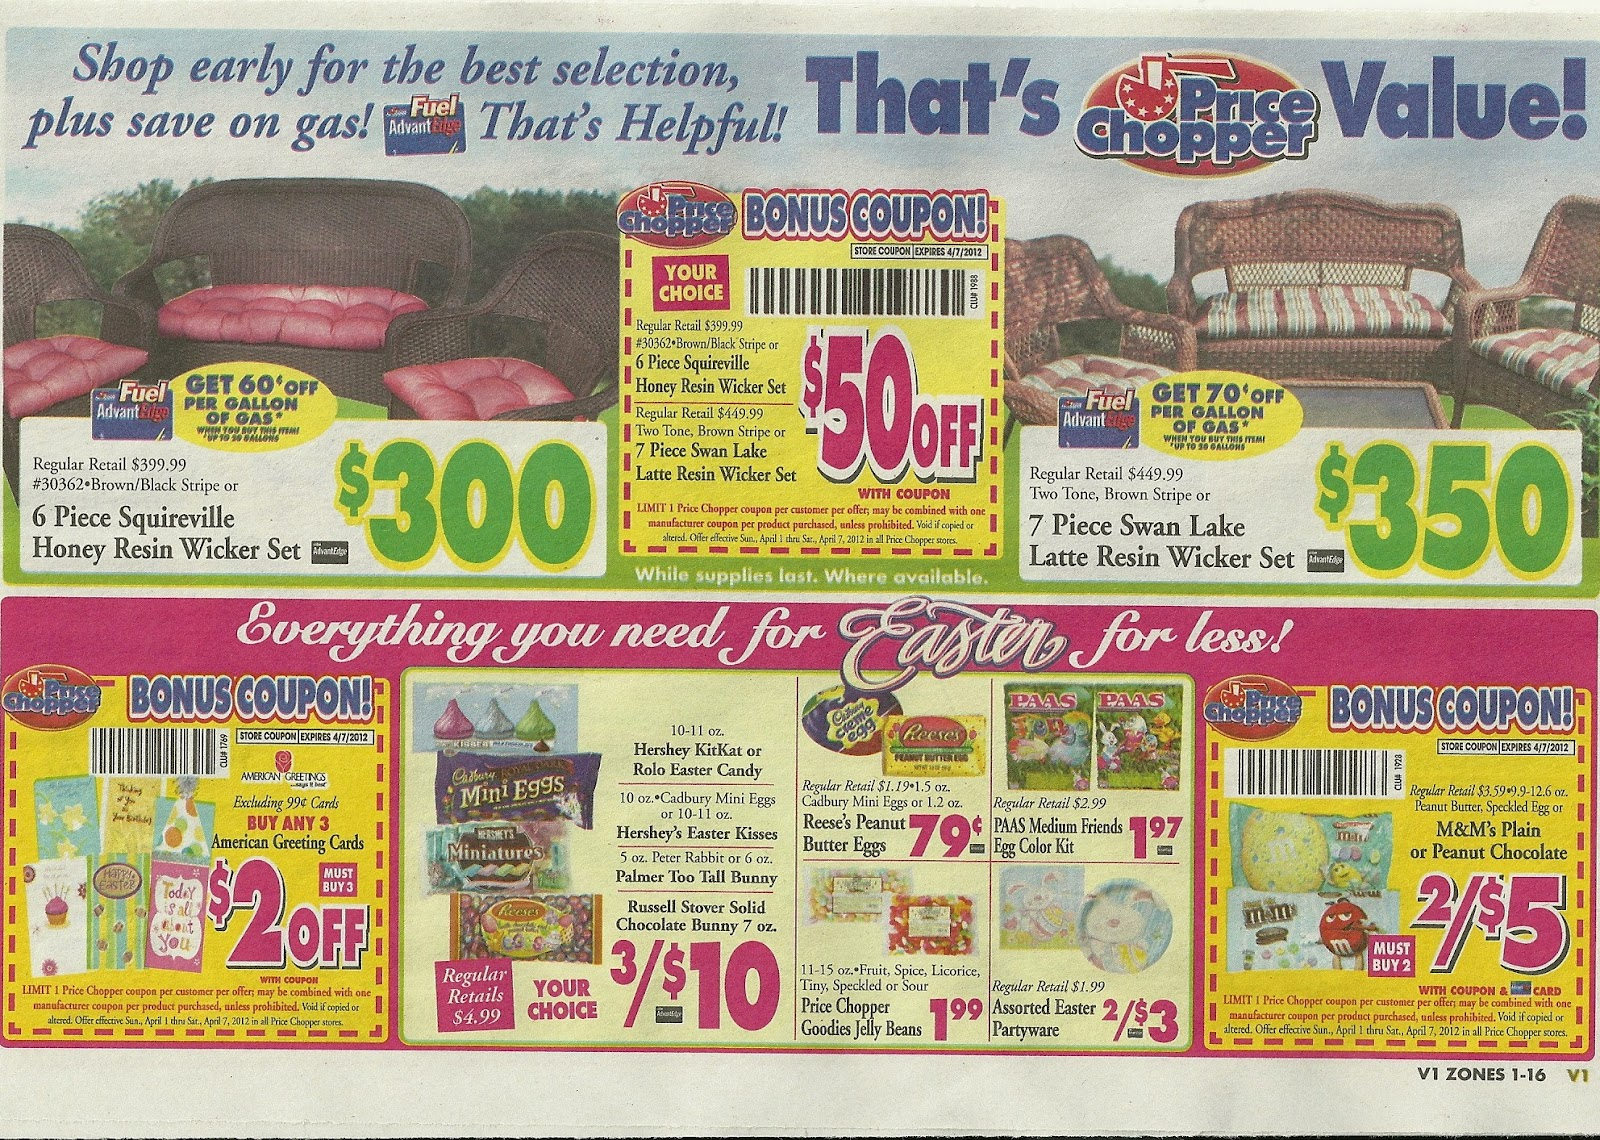 Google Coupons Price Chopper Spring Shoes Free Shipping Coupon Code